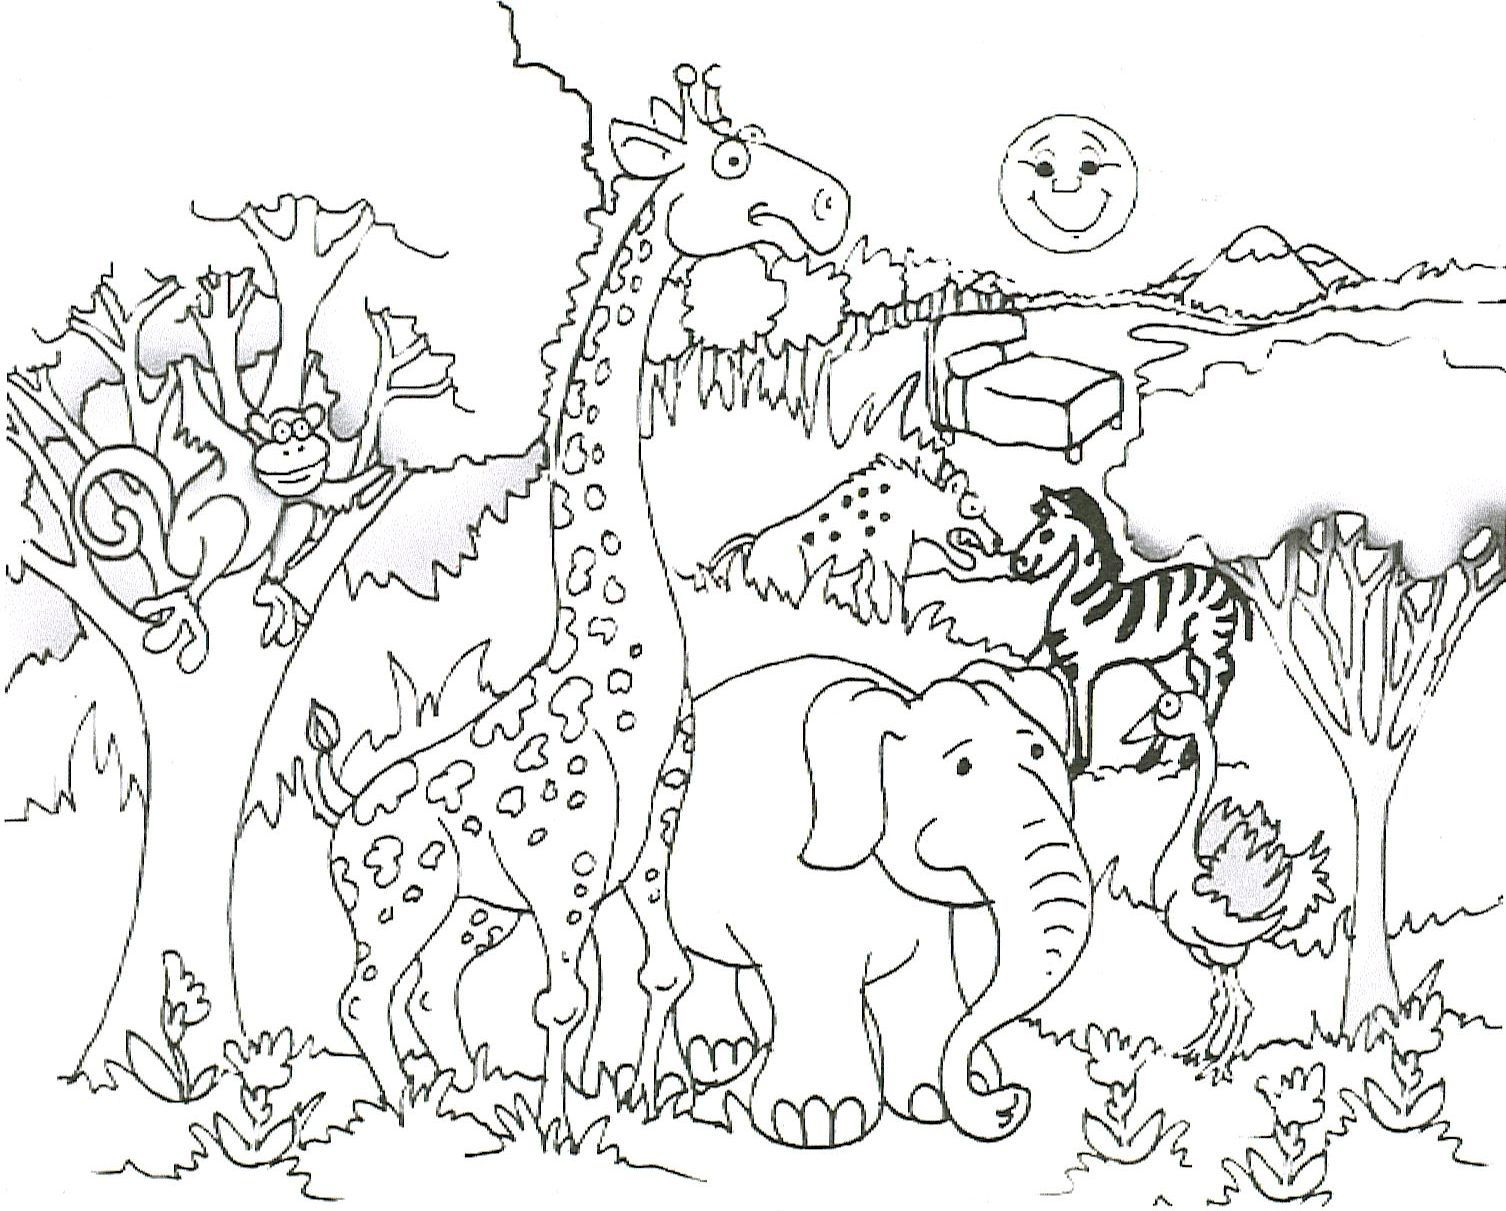 Free Printable Giraffe Coloring Pages For Kids | Giraffe